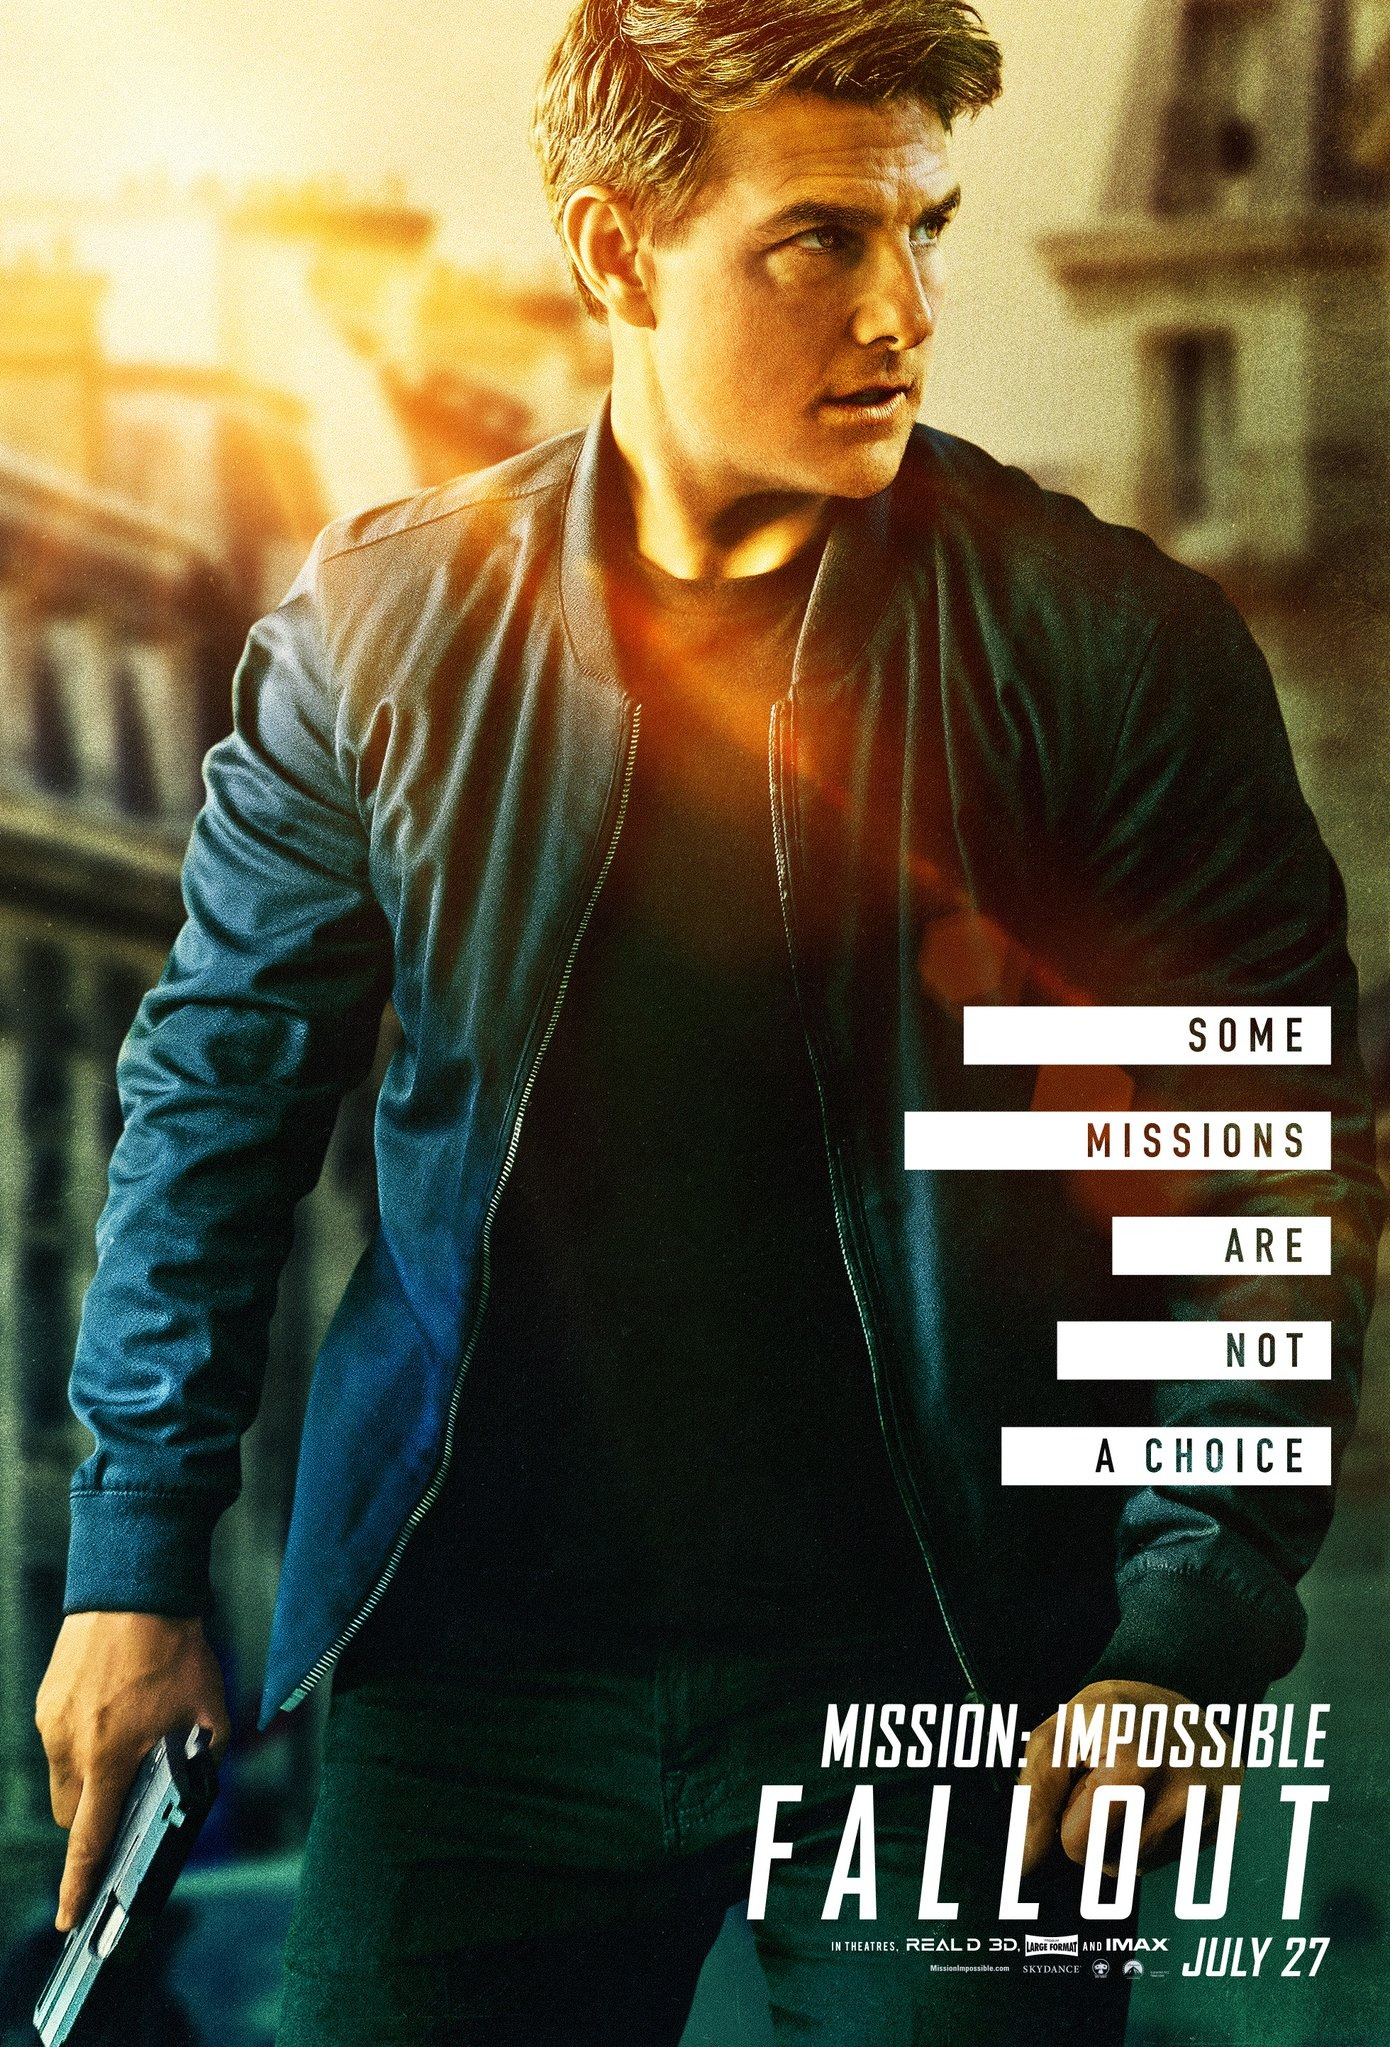 Mission Impossible Fallout poster 5.jpg